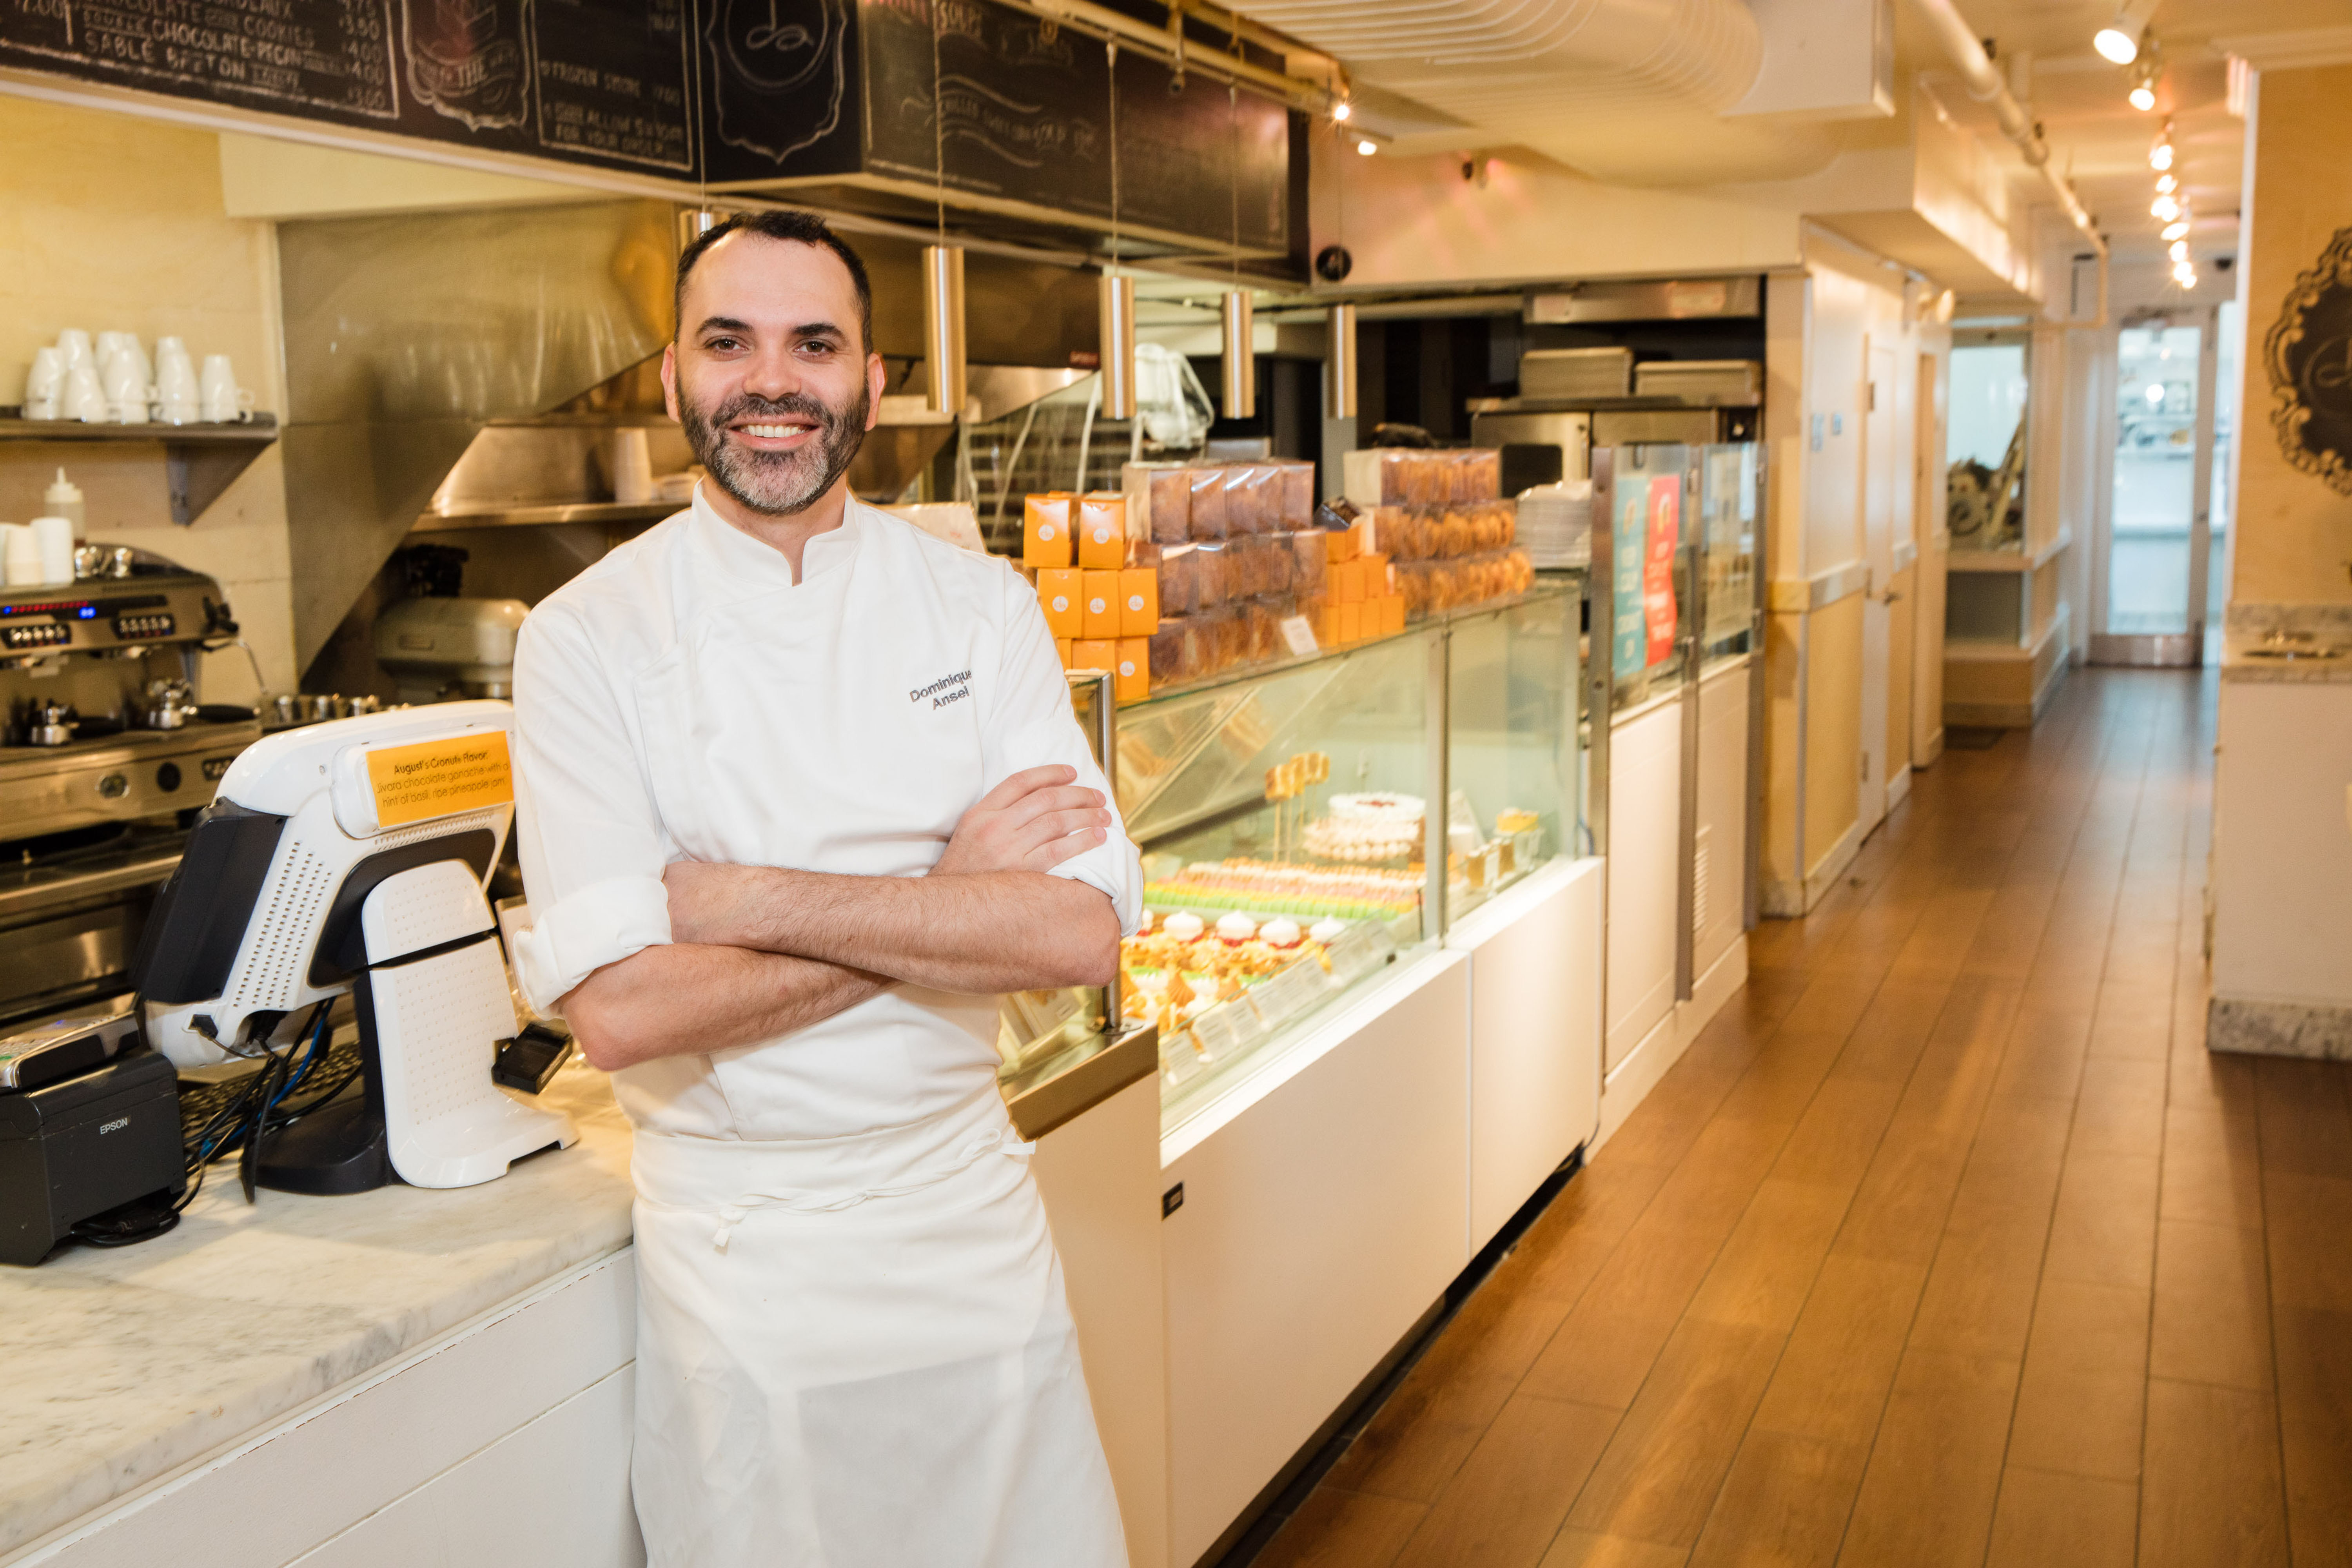 Chef Dominique Ansel in NYC Bakery